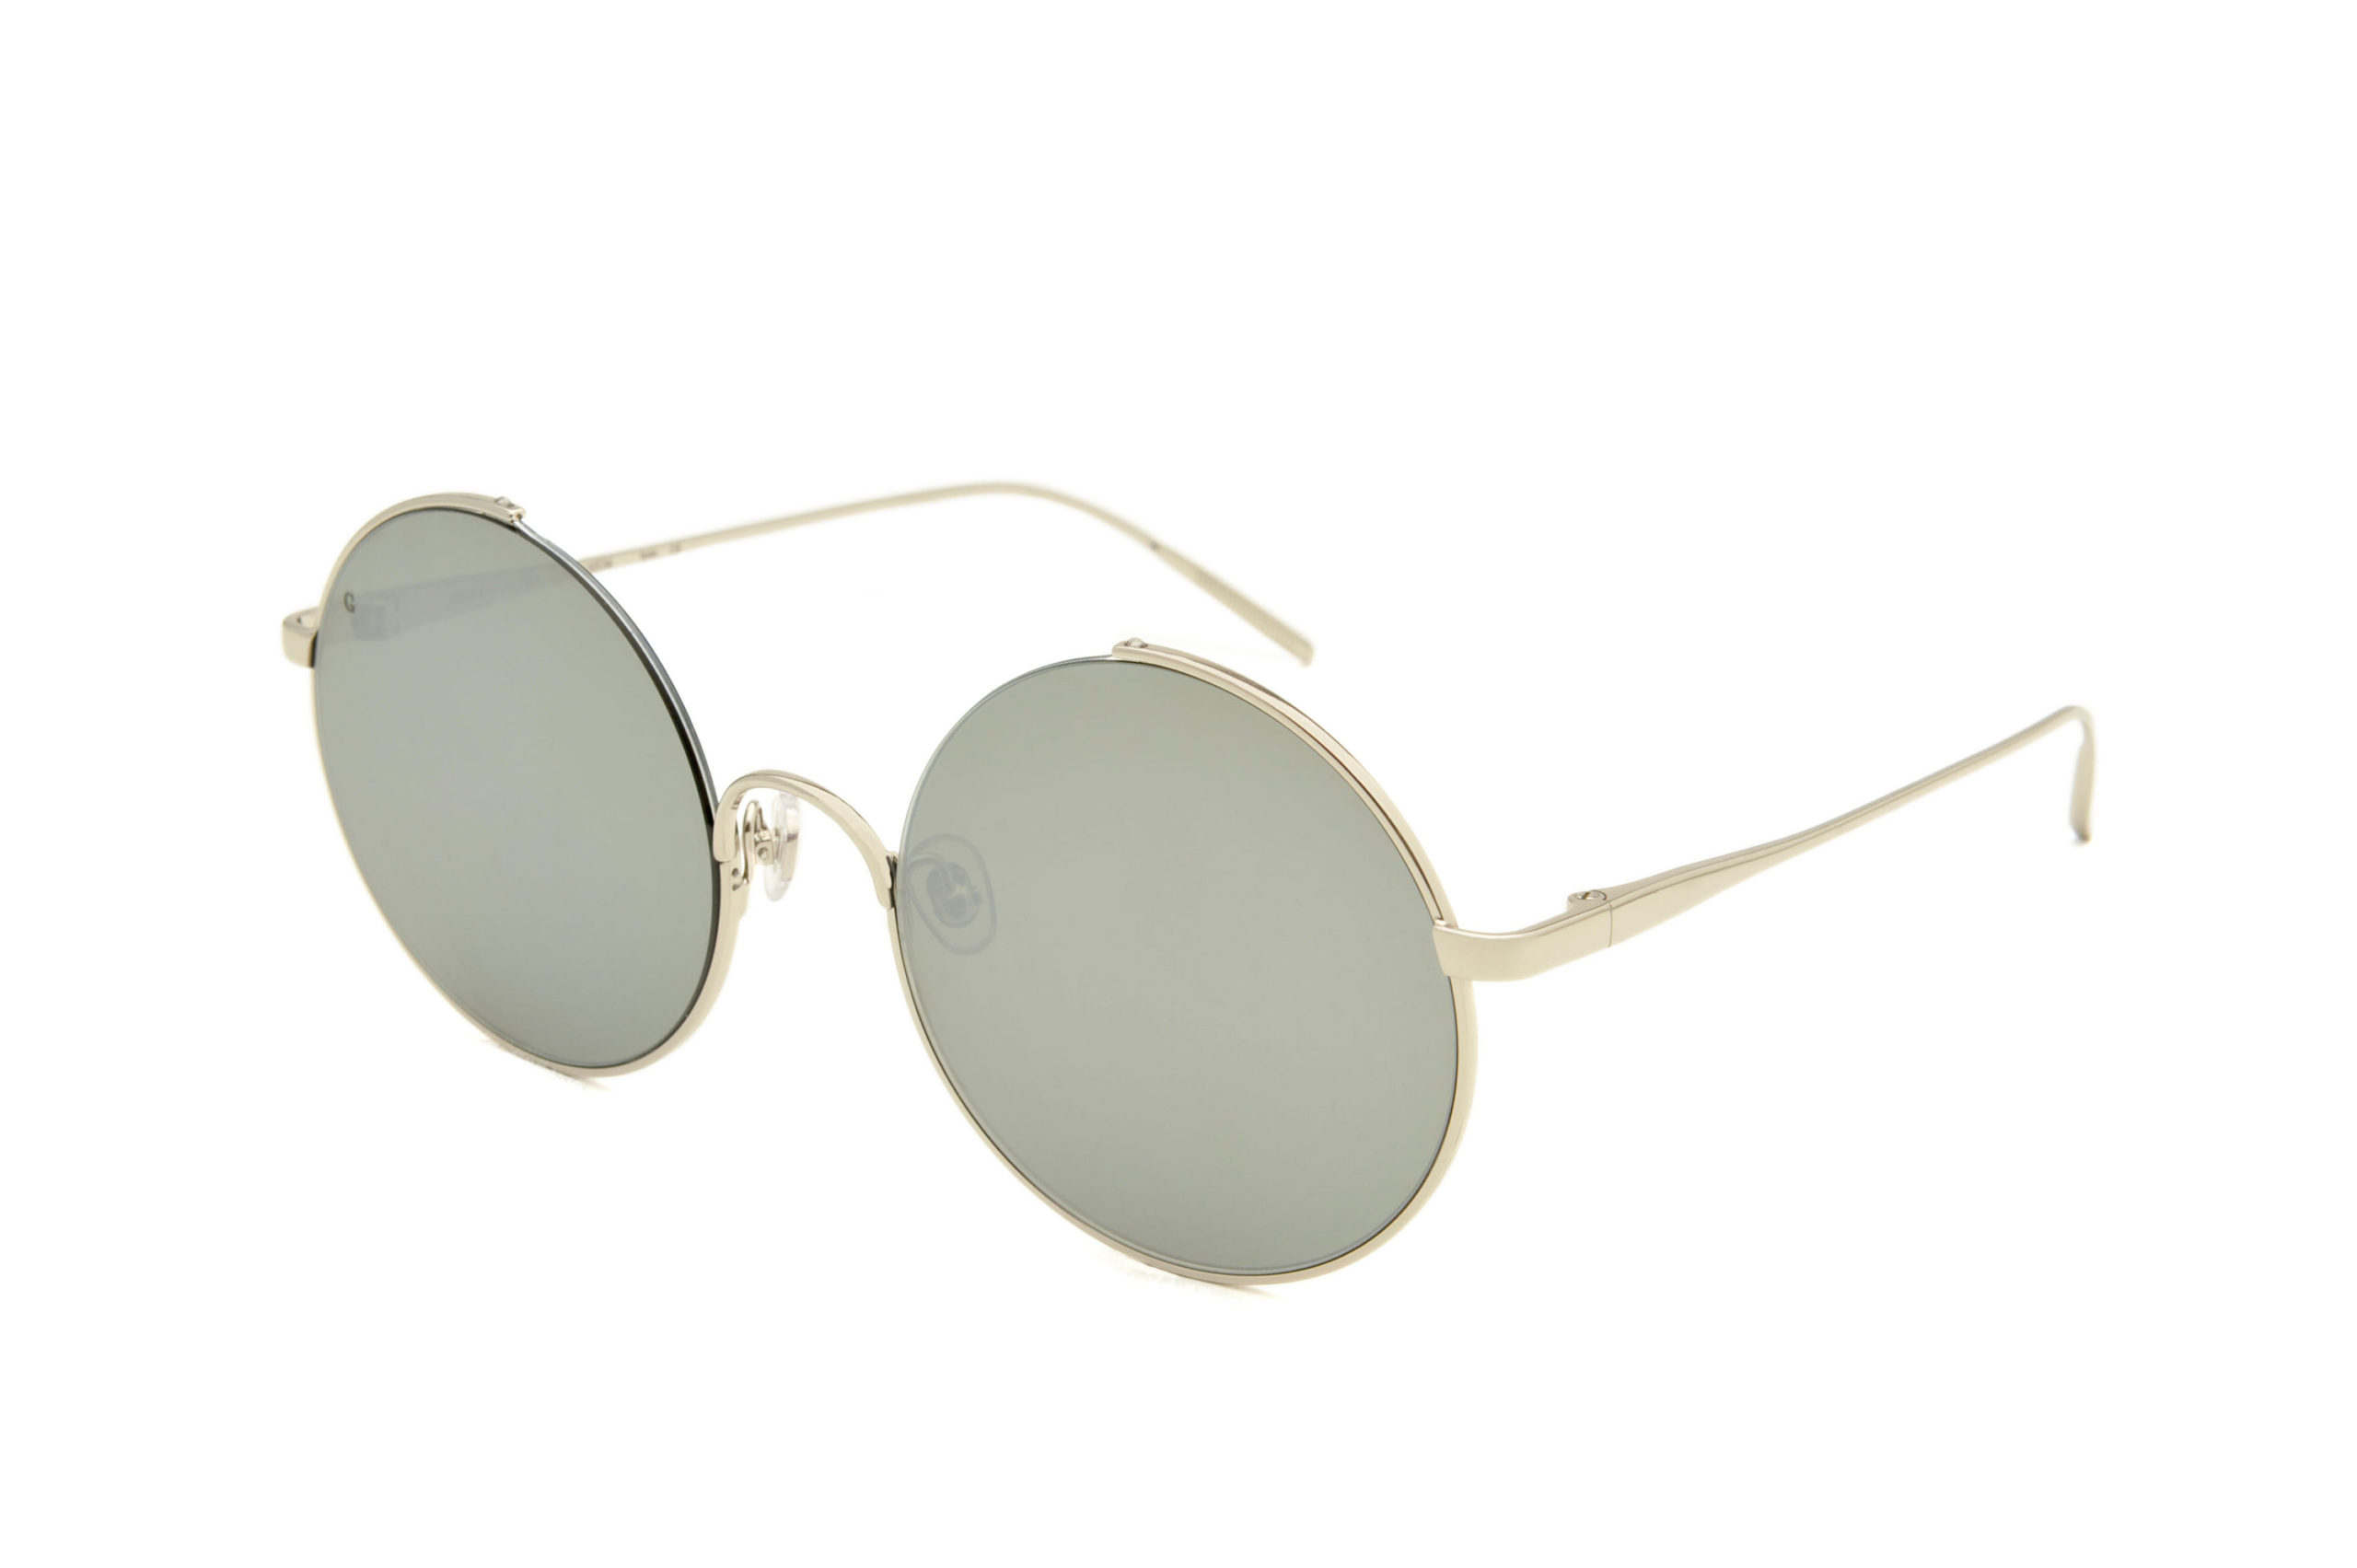 6320-bali-silver-rounded-sunglasses-by-gigi-barcelona-05-scaled